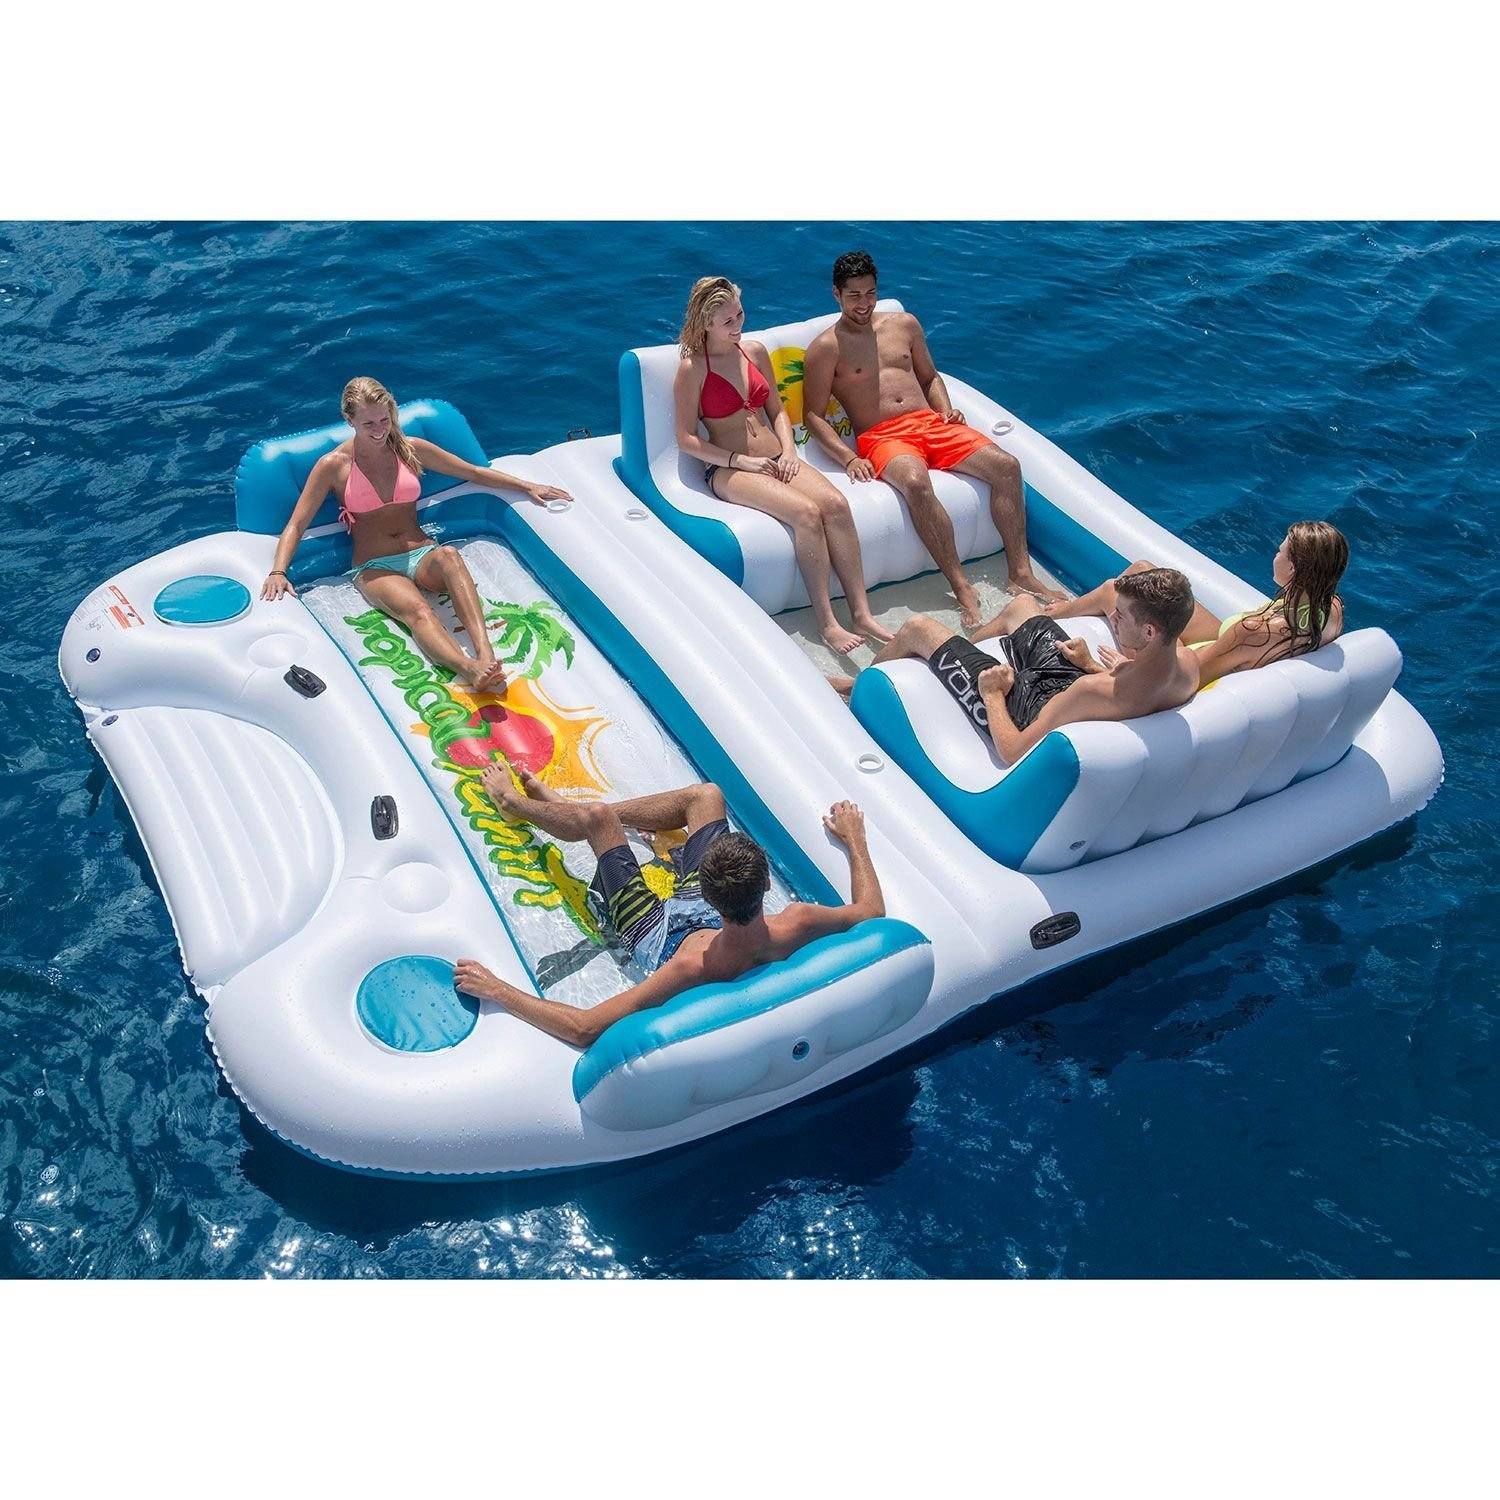 Party Island Beach: Inflatable Floating 6 Person Lake Island Raft Relax River